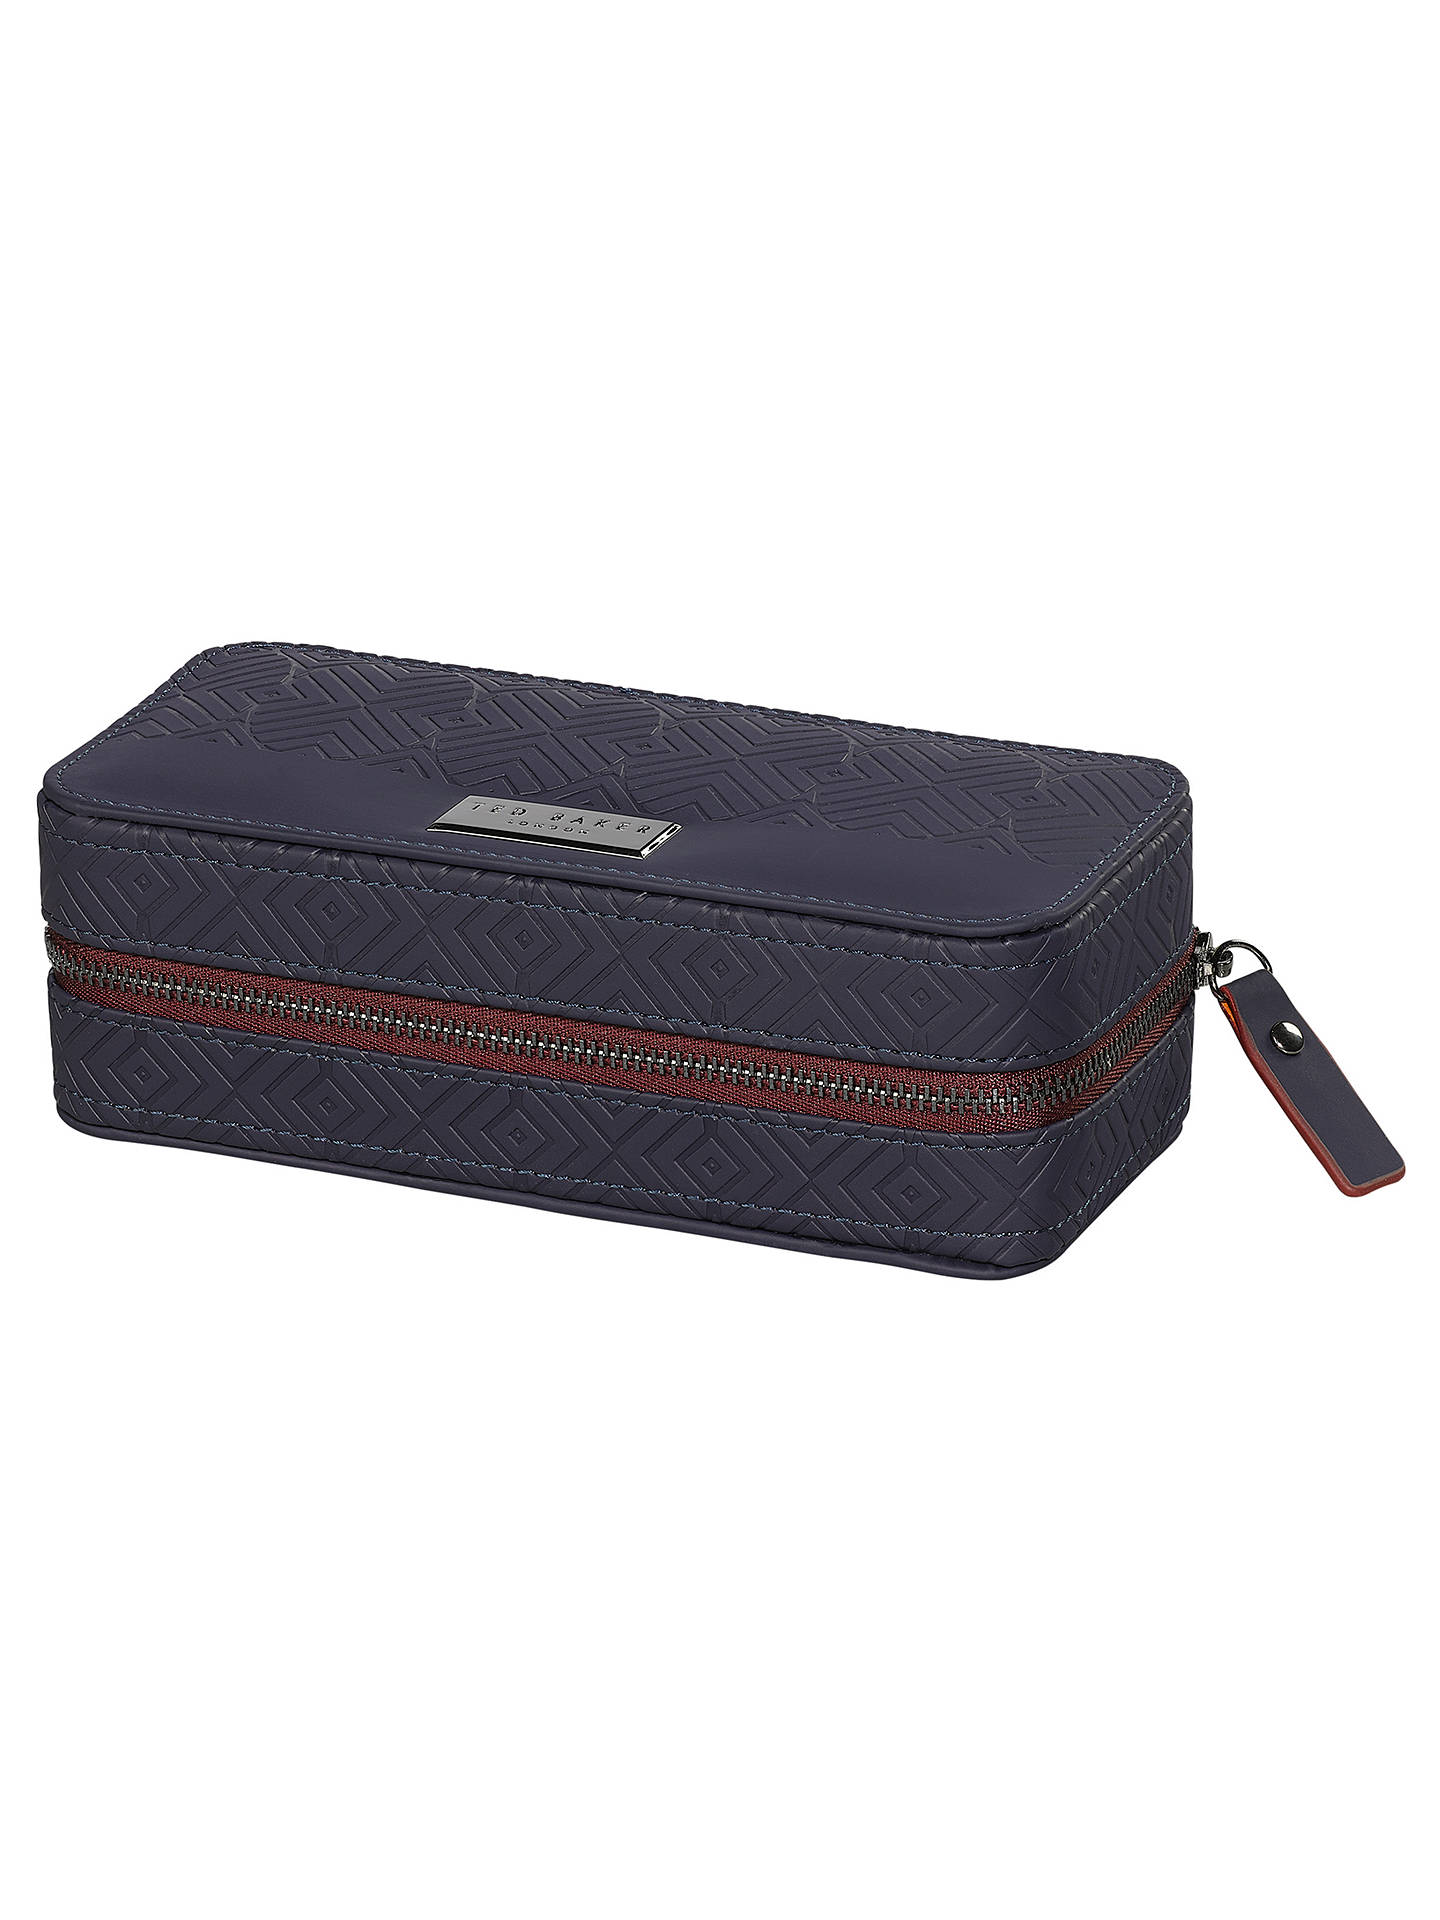 a10dbcec9f5ed ... Buy Ted Baker Travel Watch Case Online at johnlewis.com